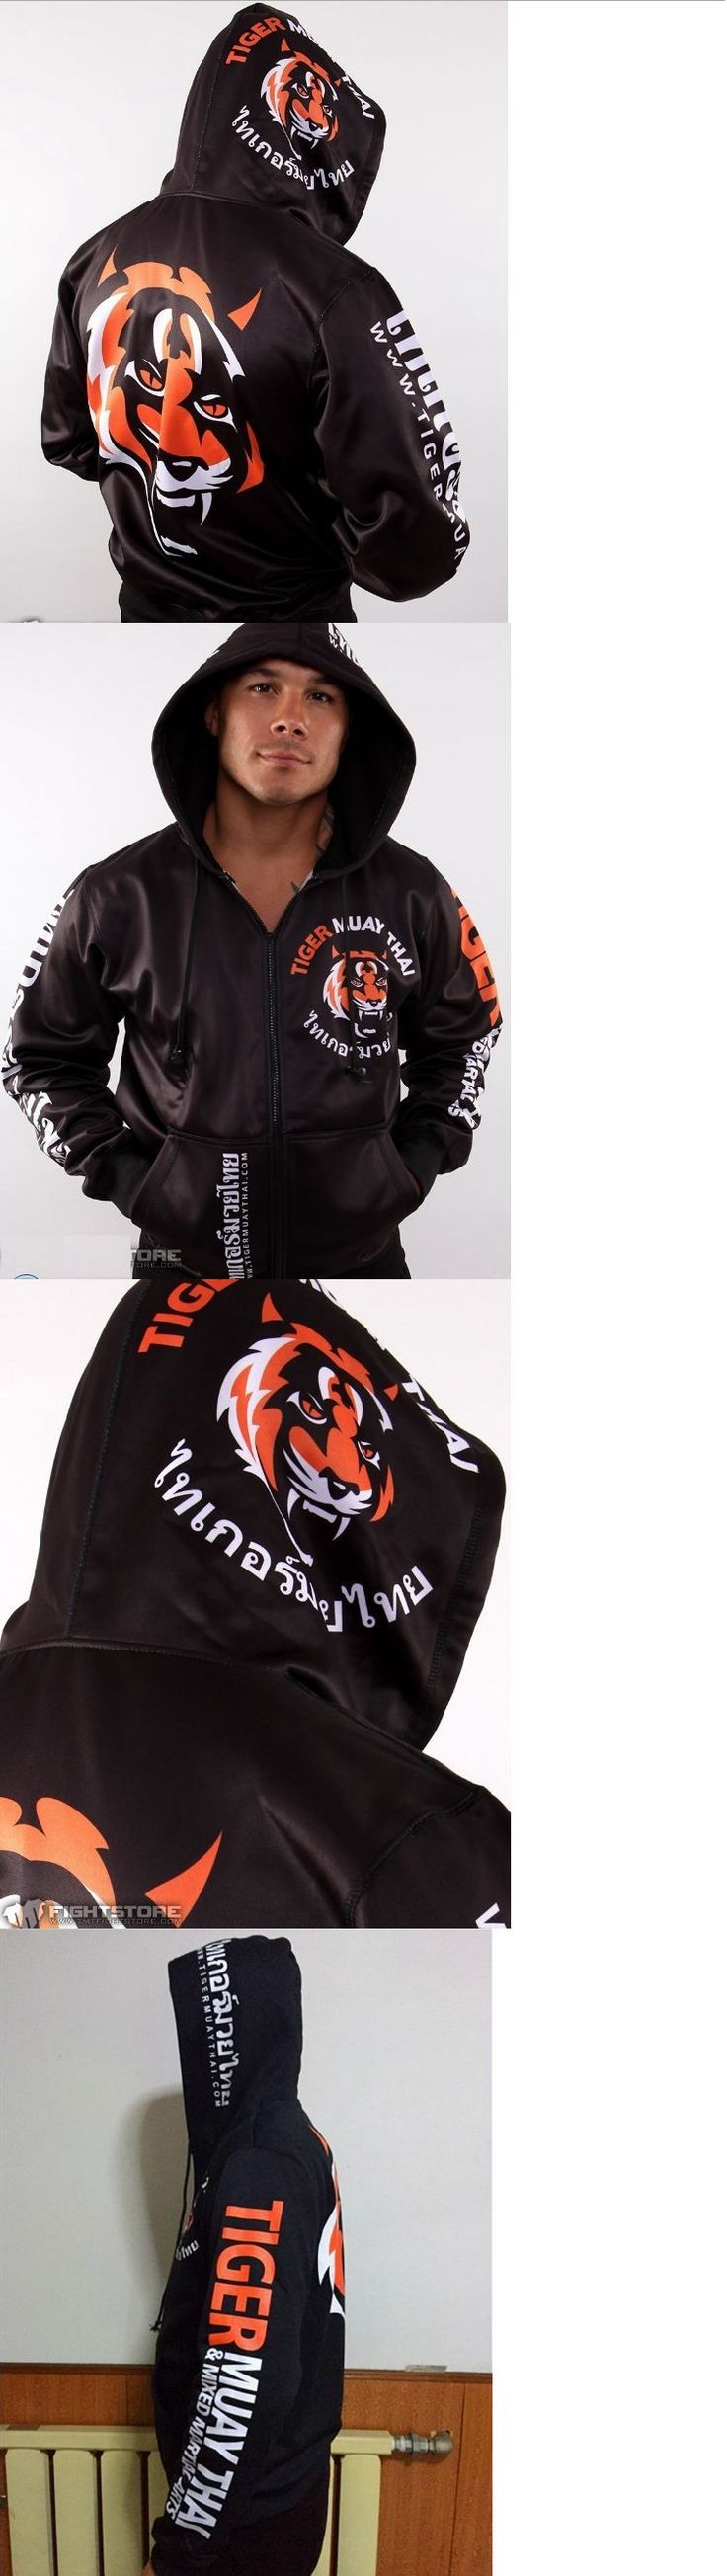 Jackets 179771: Mma Hoodie Tiger Men Muay Thai Fighting Zipper Hoodie Jacket Jumper Suit Hombre -> BUY IT NOW ONLY: $54.97 on eBay!